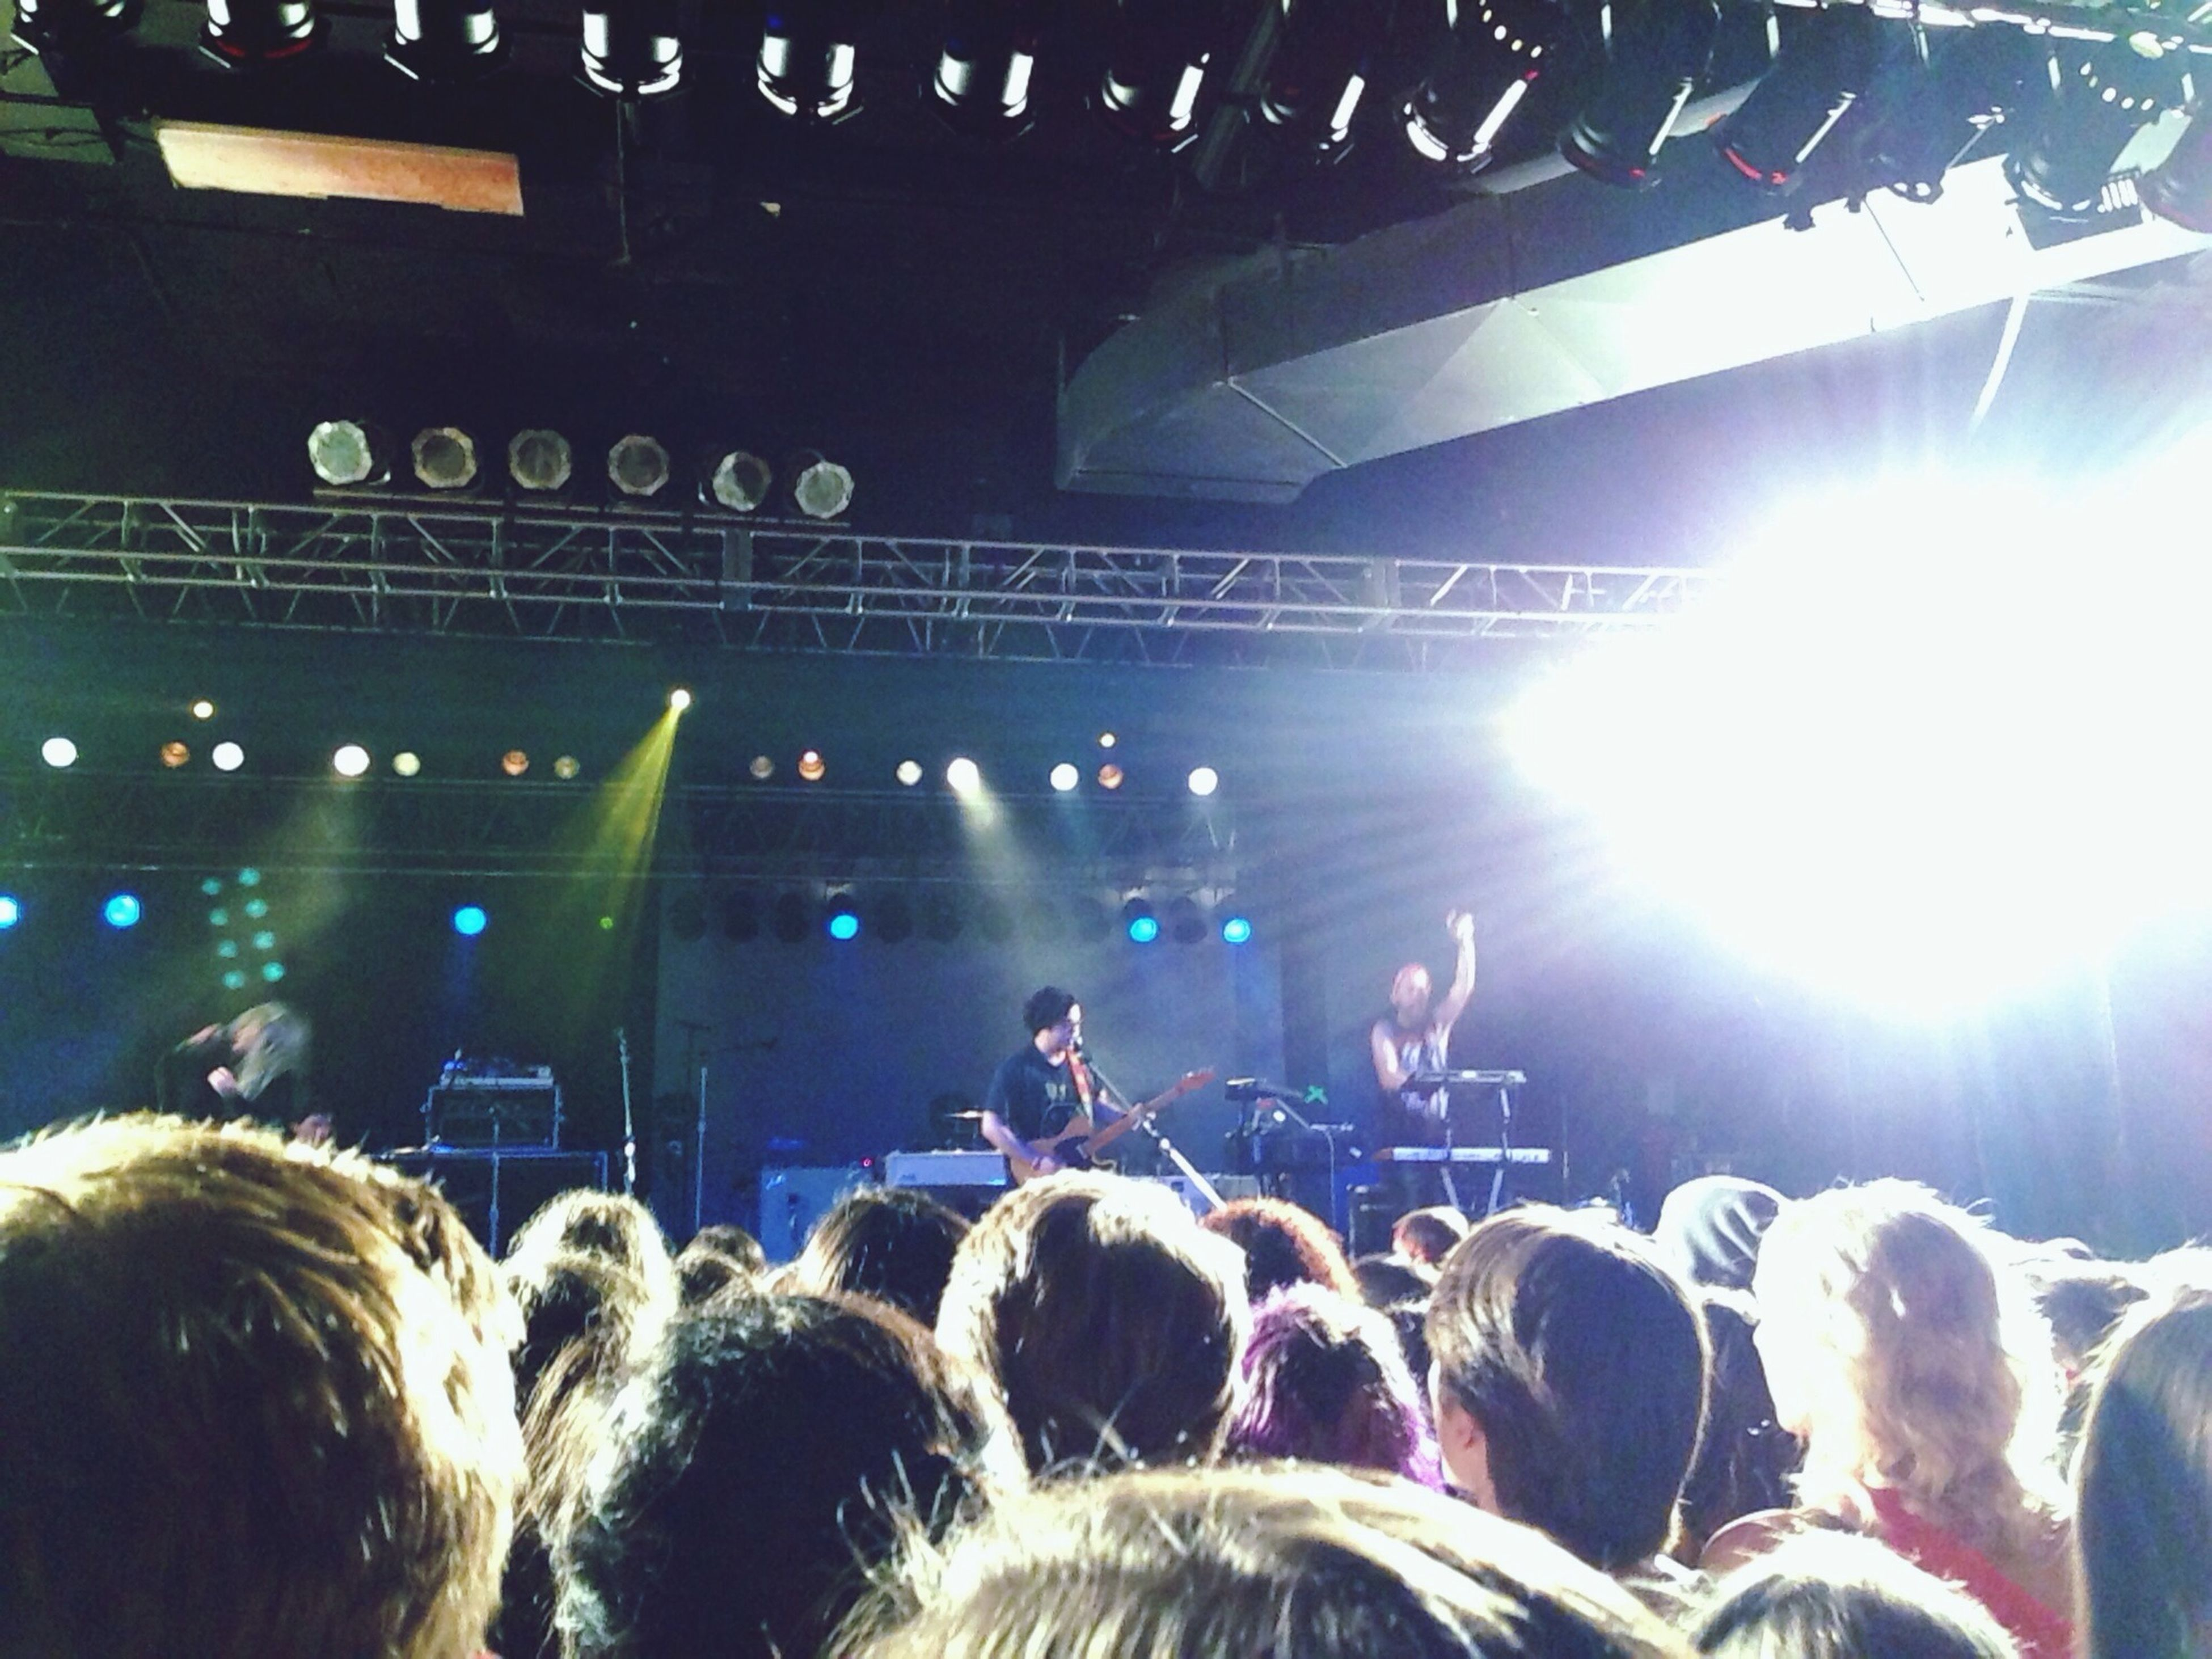 large group of people, illuminated, lifestyles, crowd, men, leisure activity, nightlife, night, person, arts culture and entertainment, enjoyment, event, music, music festival, popular music concert, performance, fun, togetherness